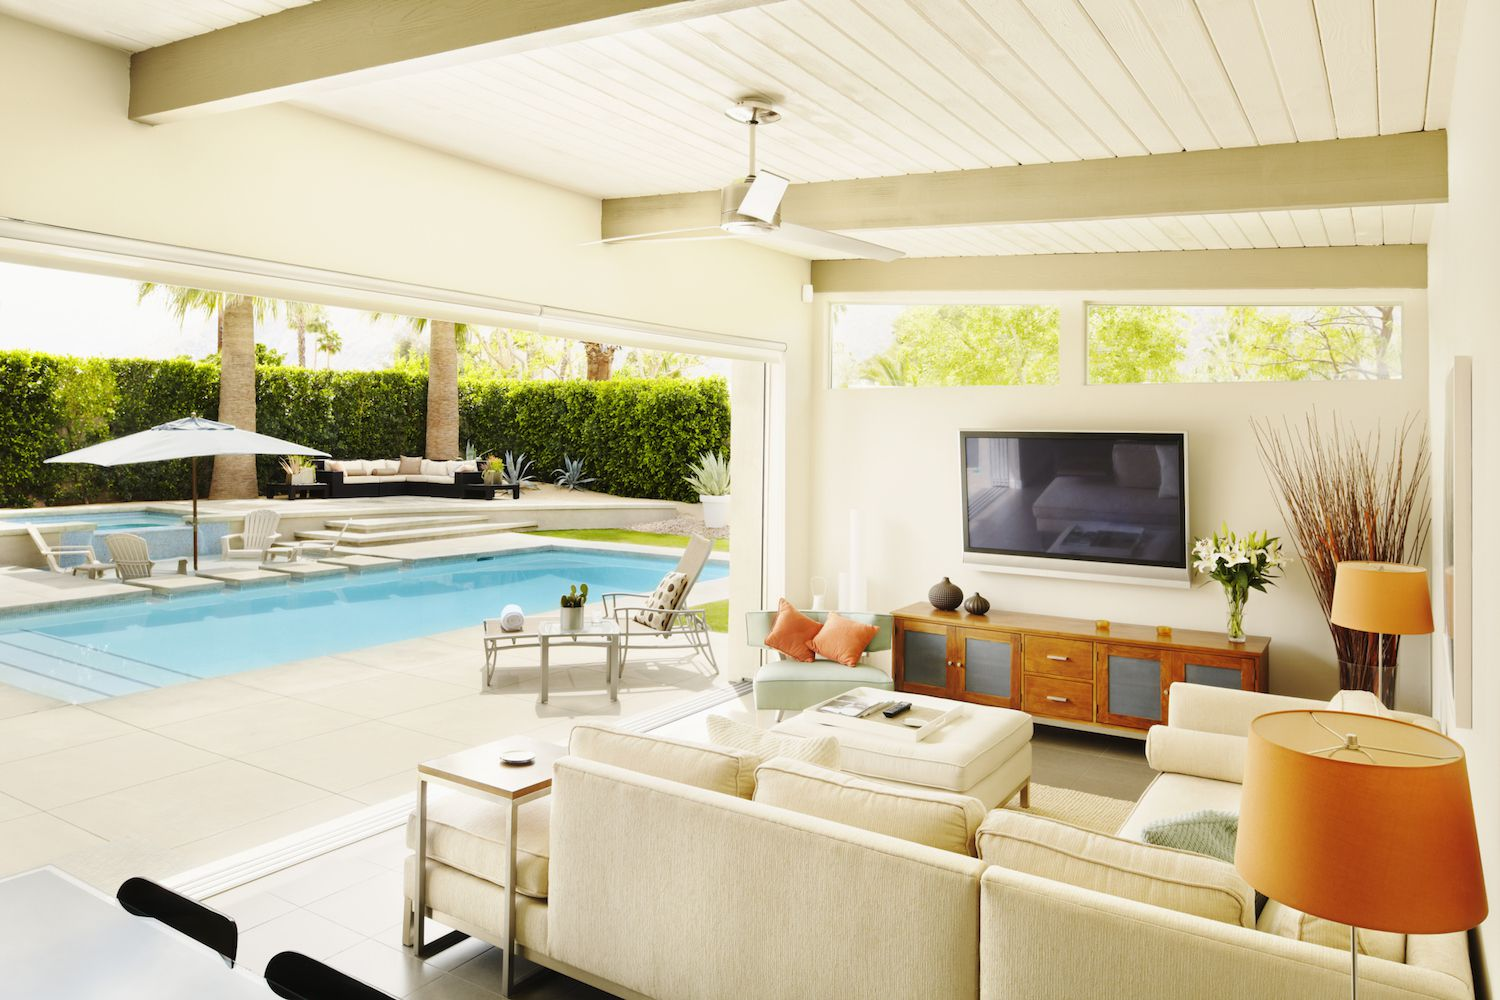 Accentuate the entertaining lifestyle around the pool House with swimming pool in living room